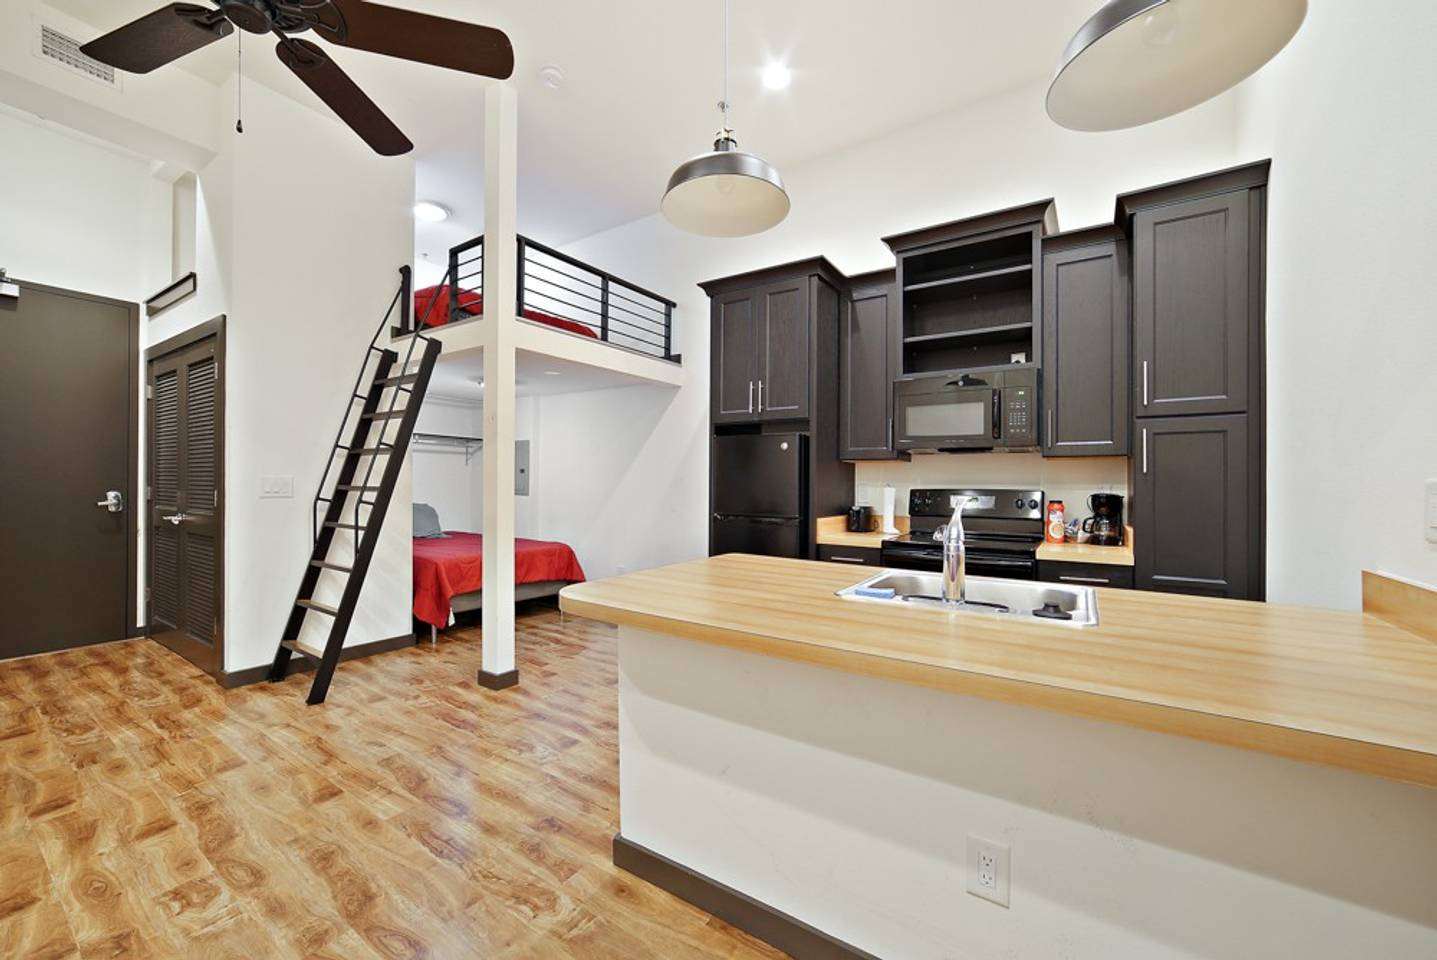 Loft Style Living in Downtown Tampa #206 photo 18401426